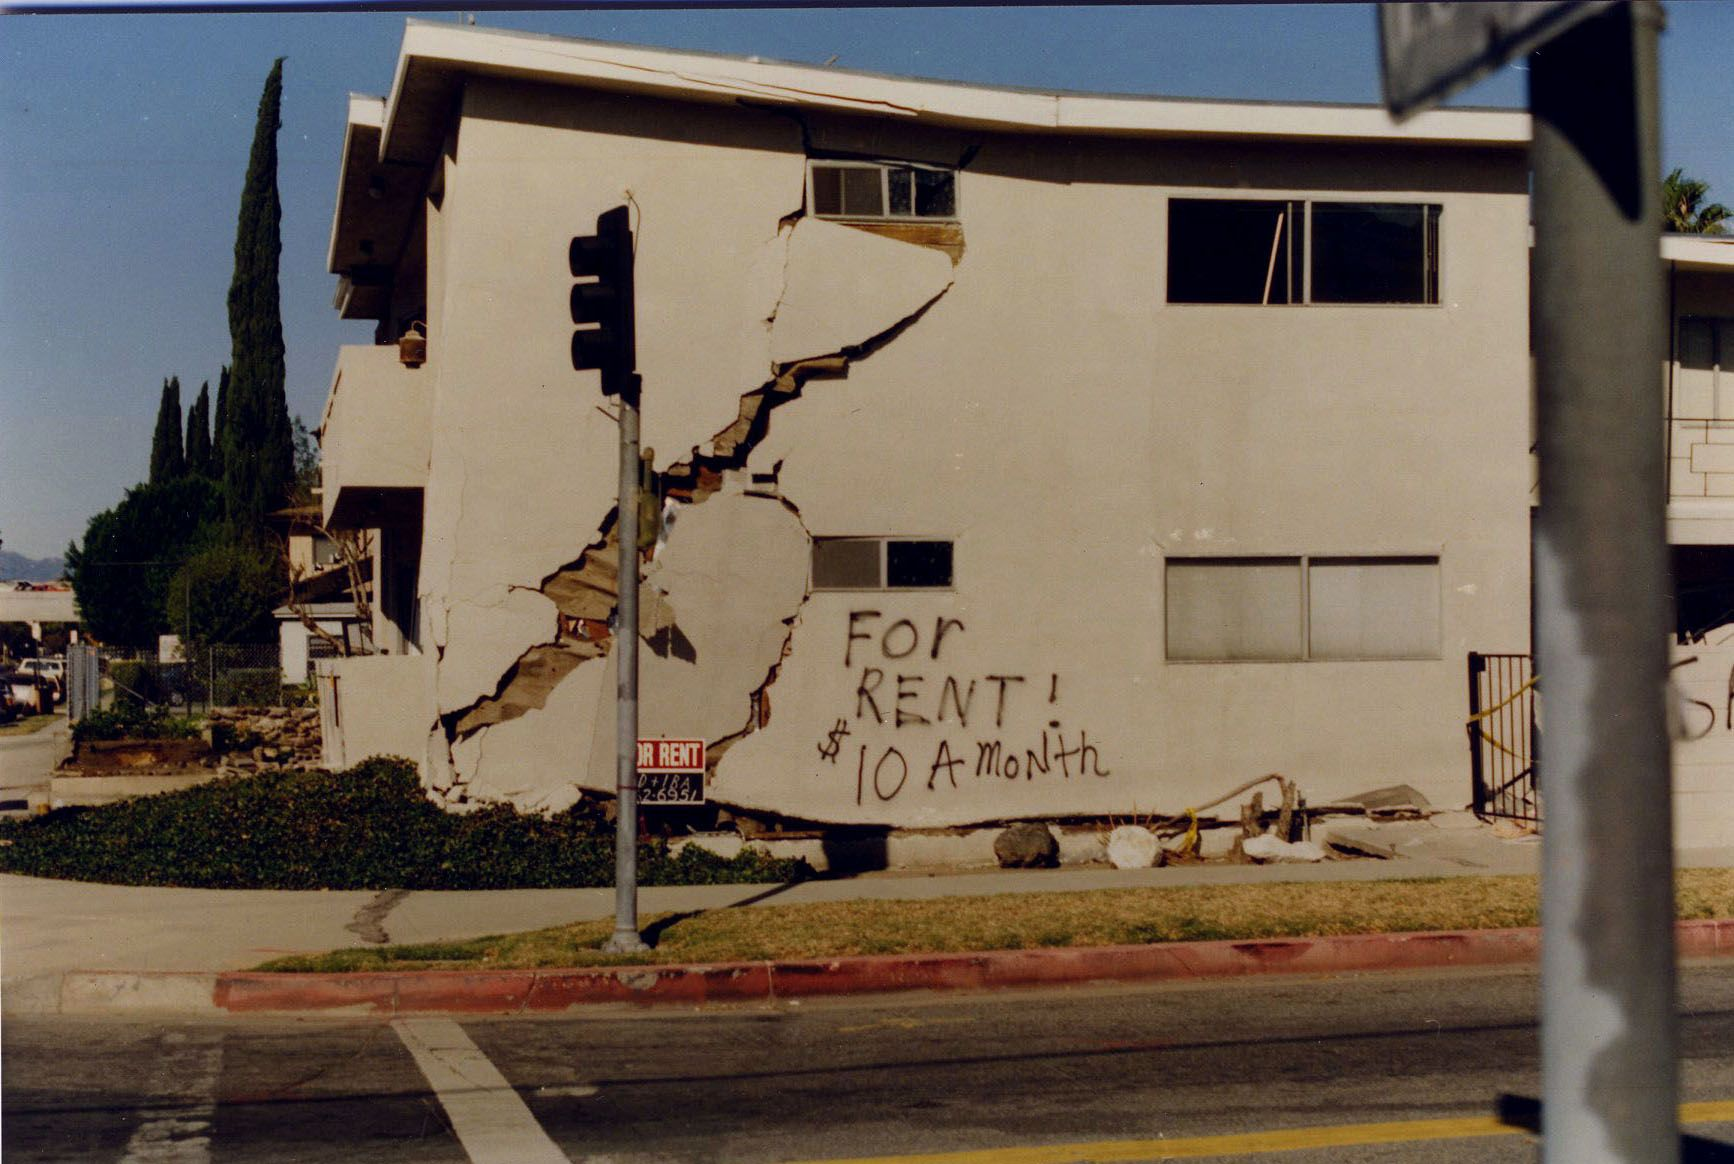 hazeltine avenue van nuys california after northridge earthquake january 17 1994